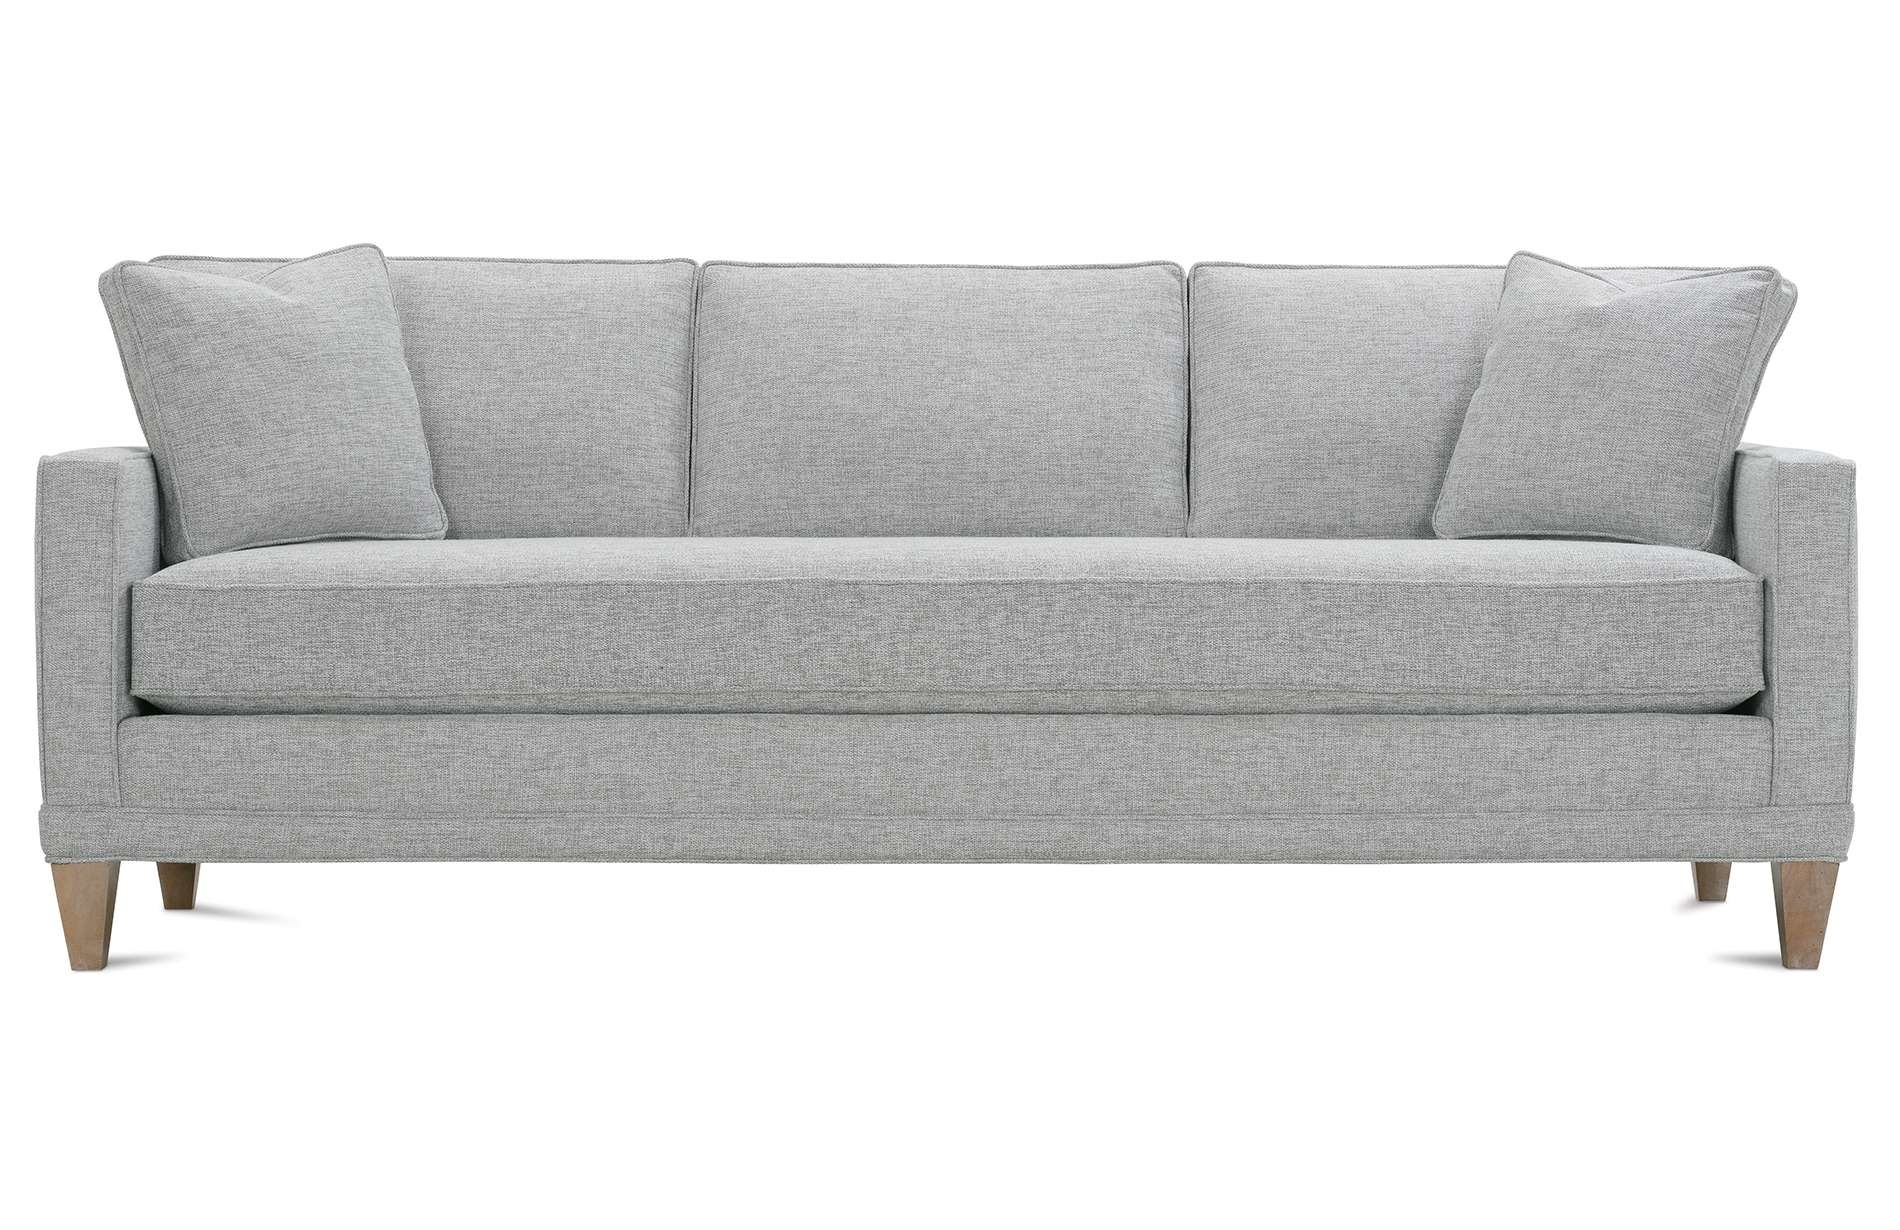 Awe Inspiring Townsend 89 Sofa Bench Seat Ocoug Best Dining Table And Chair Ideas Images Ocougorg